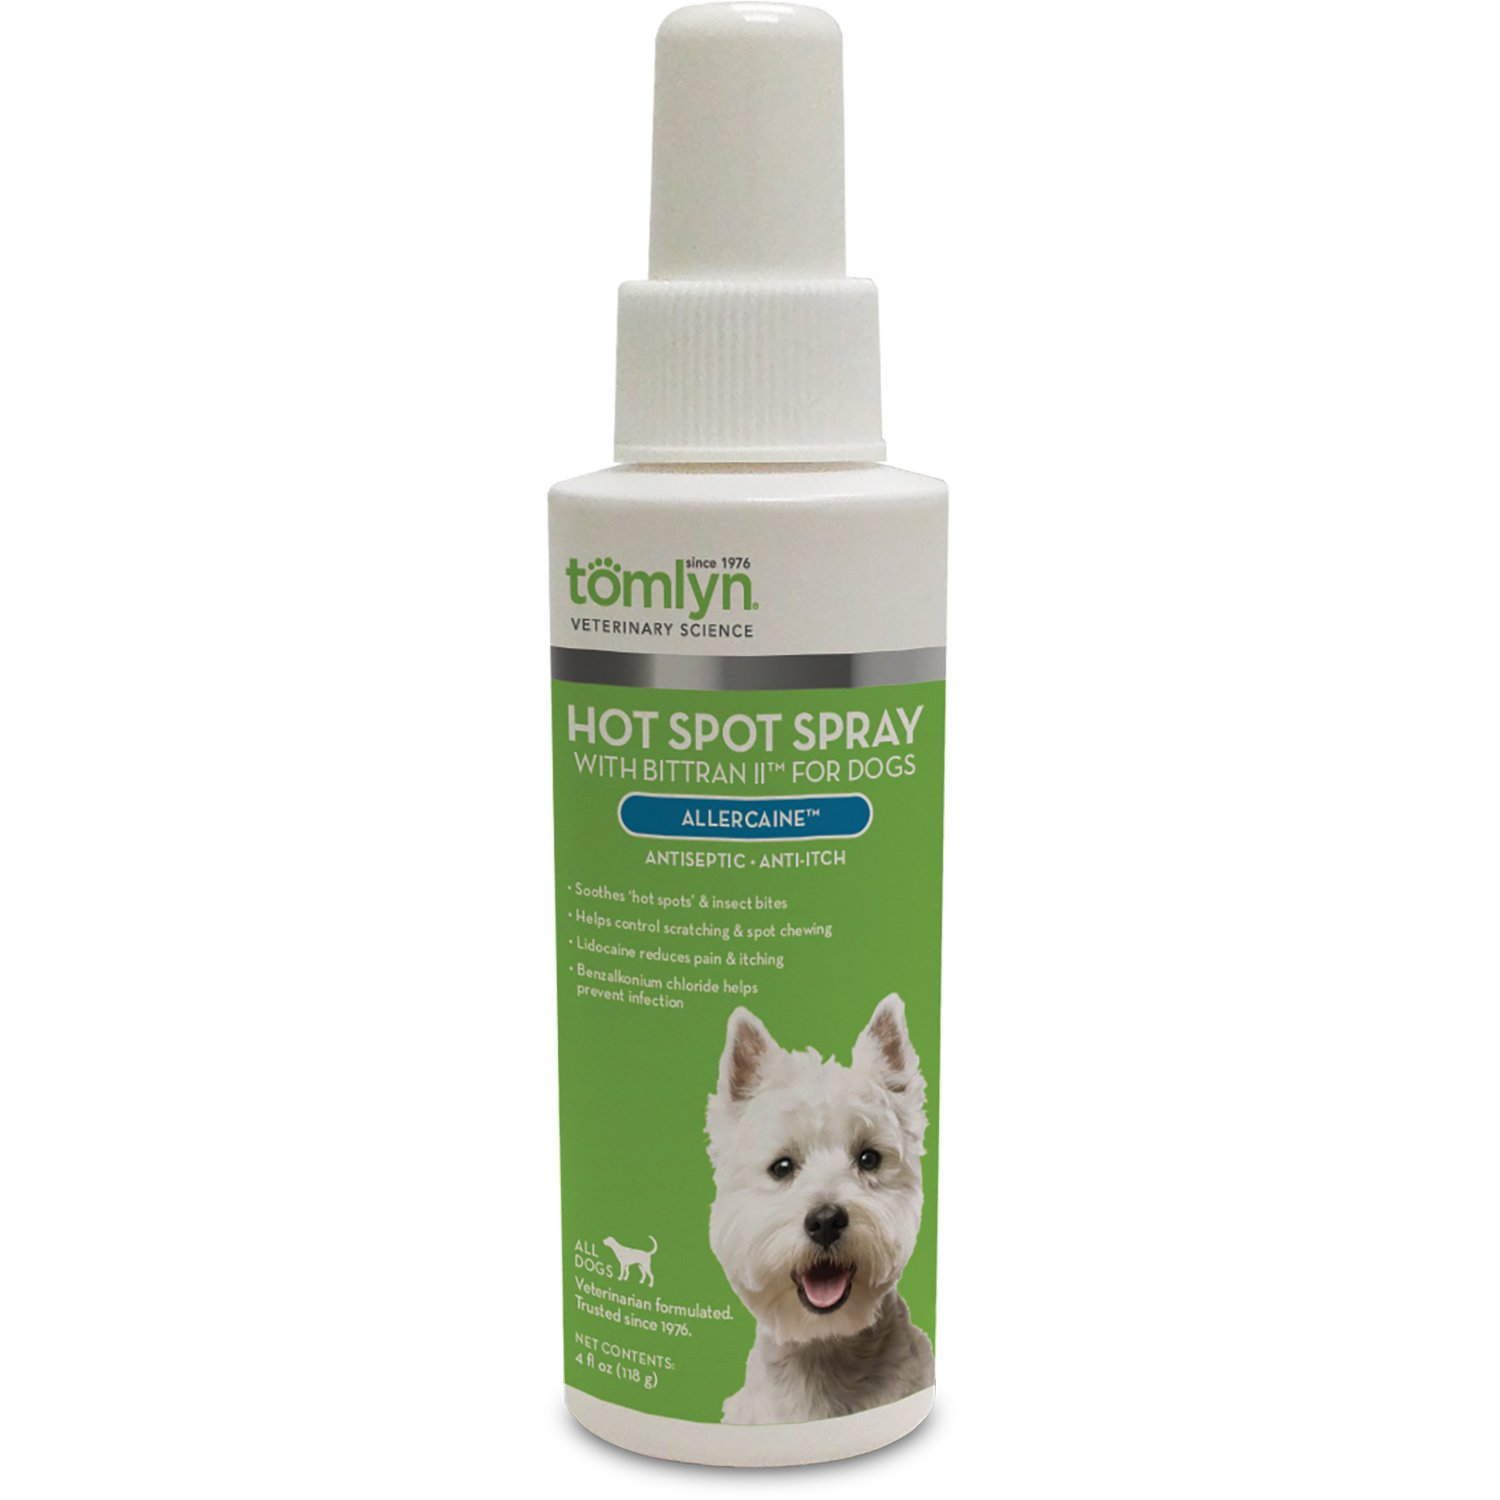 Remedy+Recovery Medicated Antiseptic Spray for Dogs | Petco